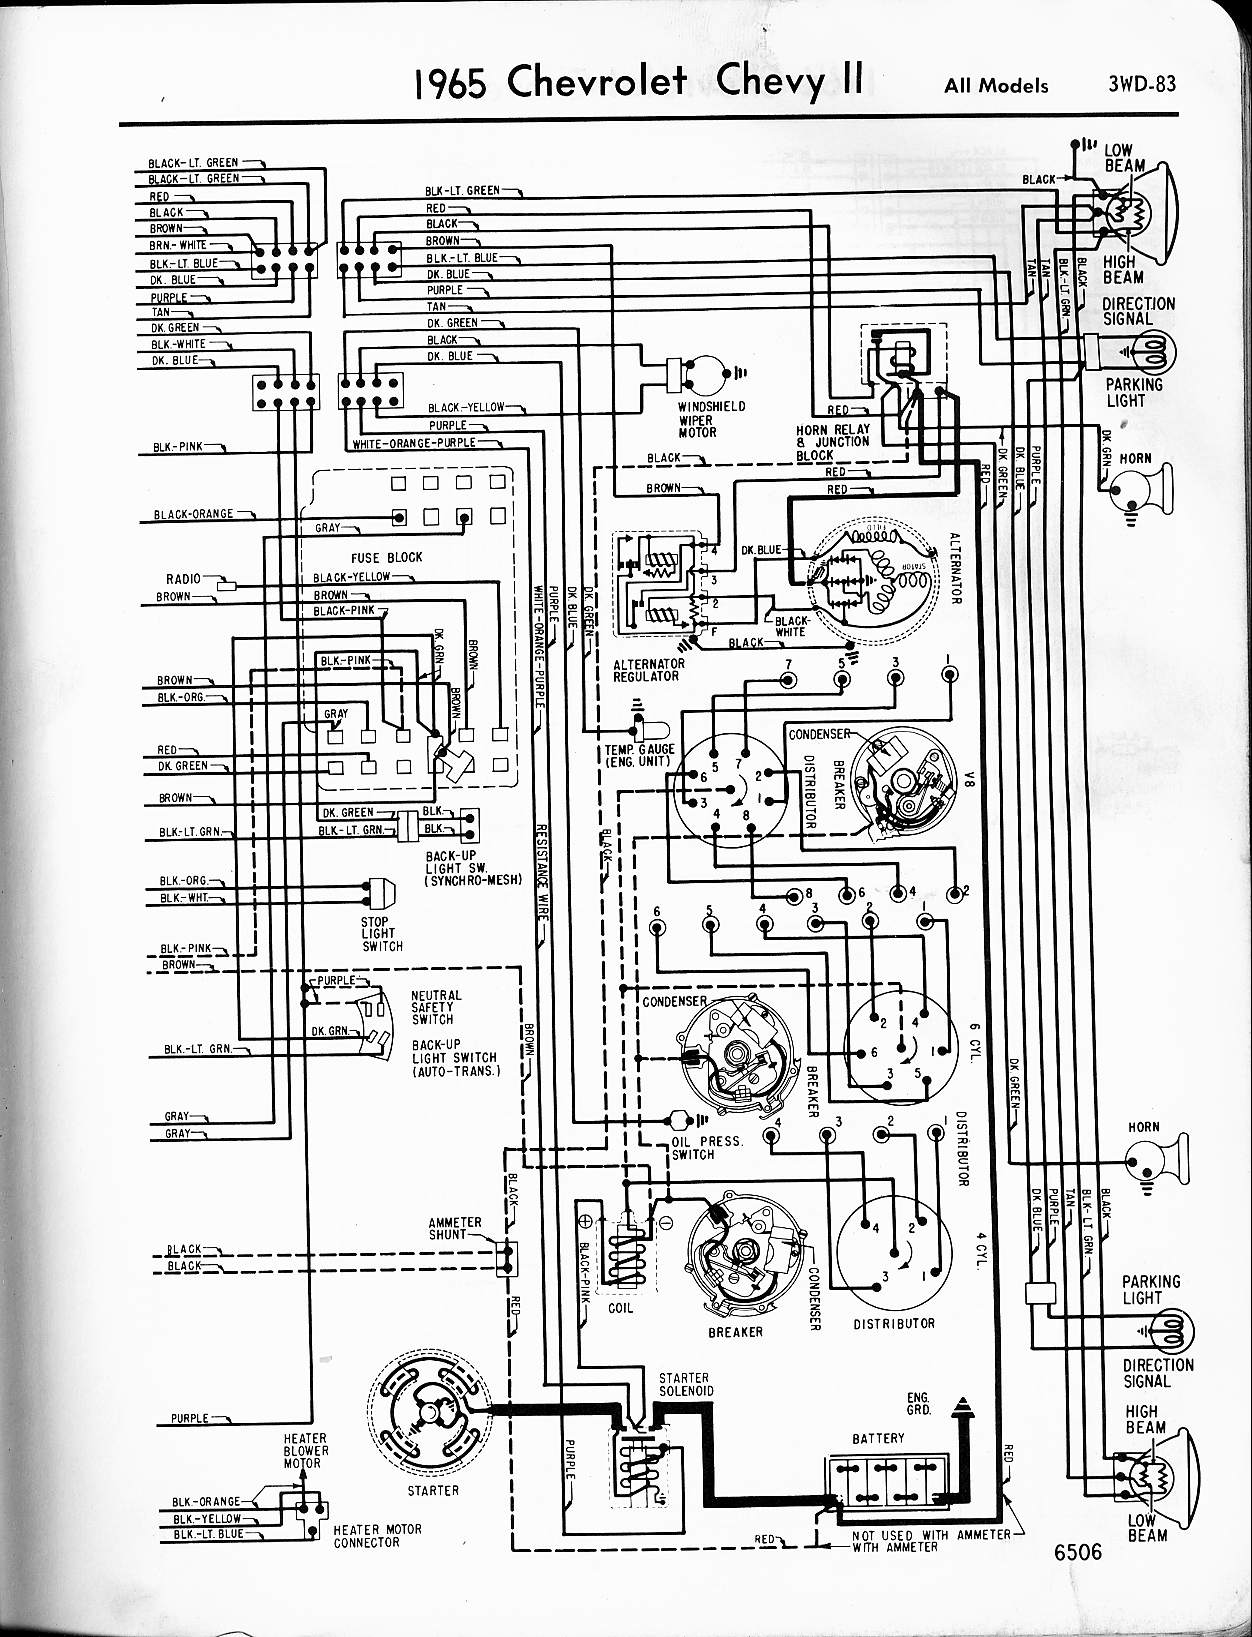 chevy diagrams rh wiring wizard com 65 chevelle steering column wiring diagram 70 Chevelle Wiring Diagram